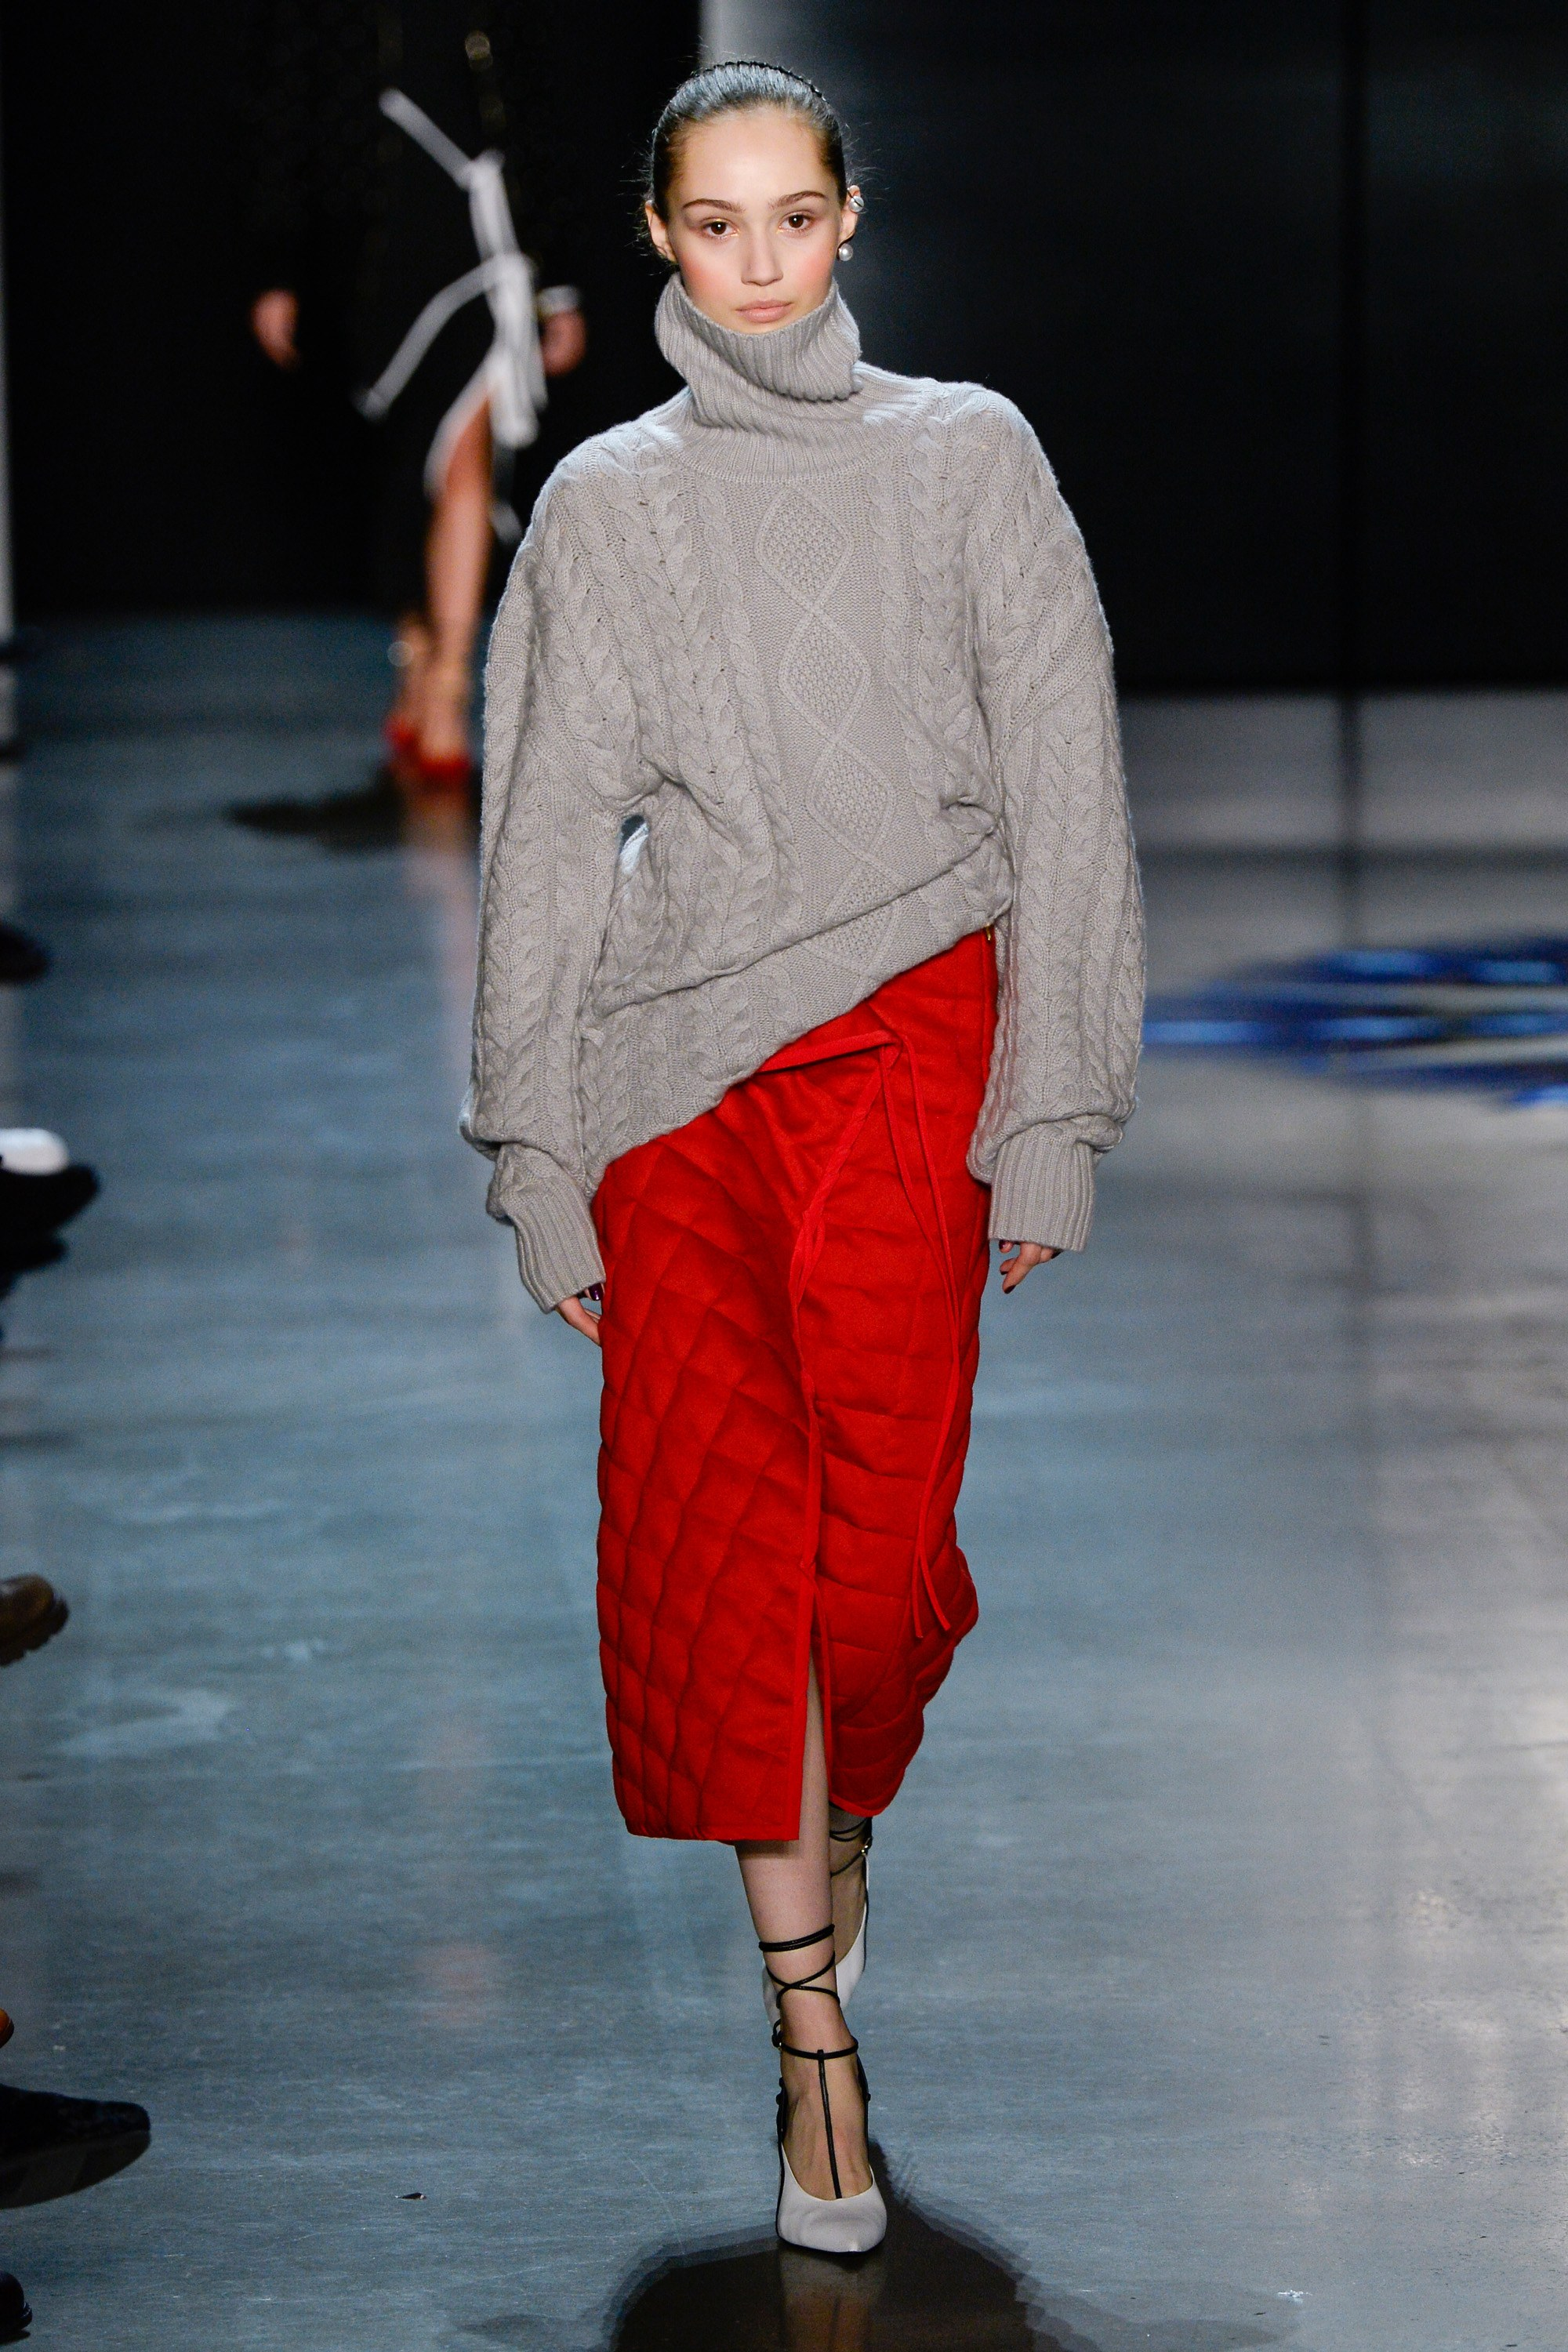 Parabel Gurung - Fascinating textures and fabric combinations.